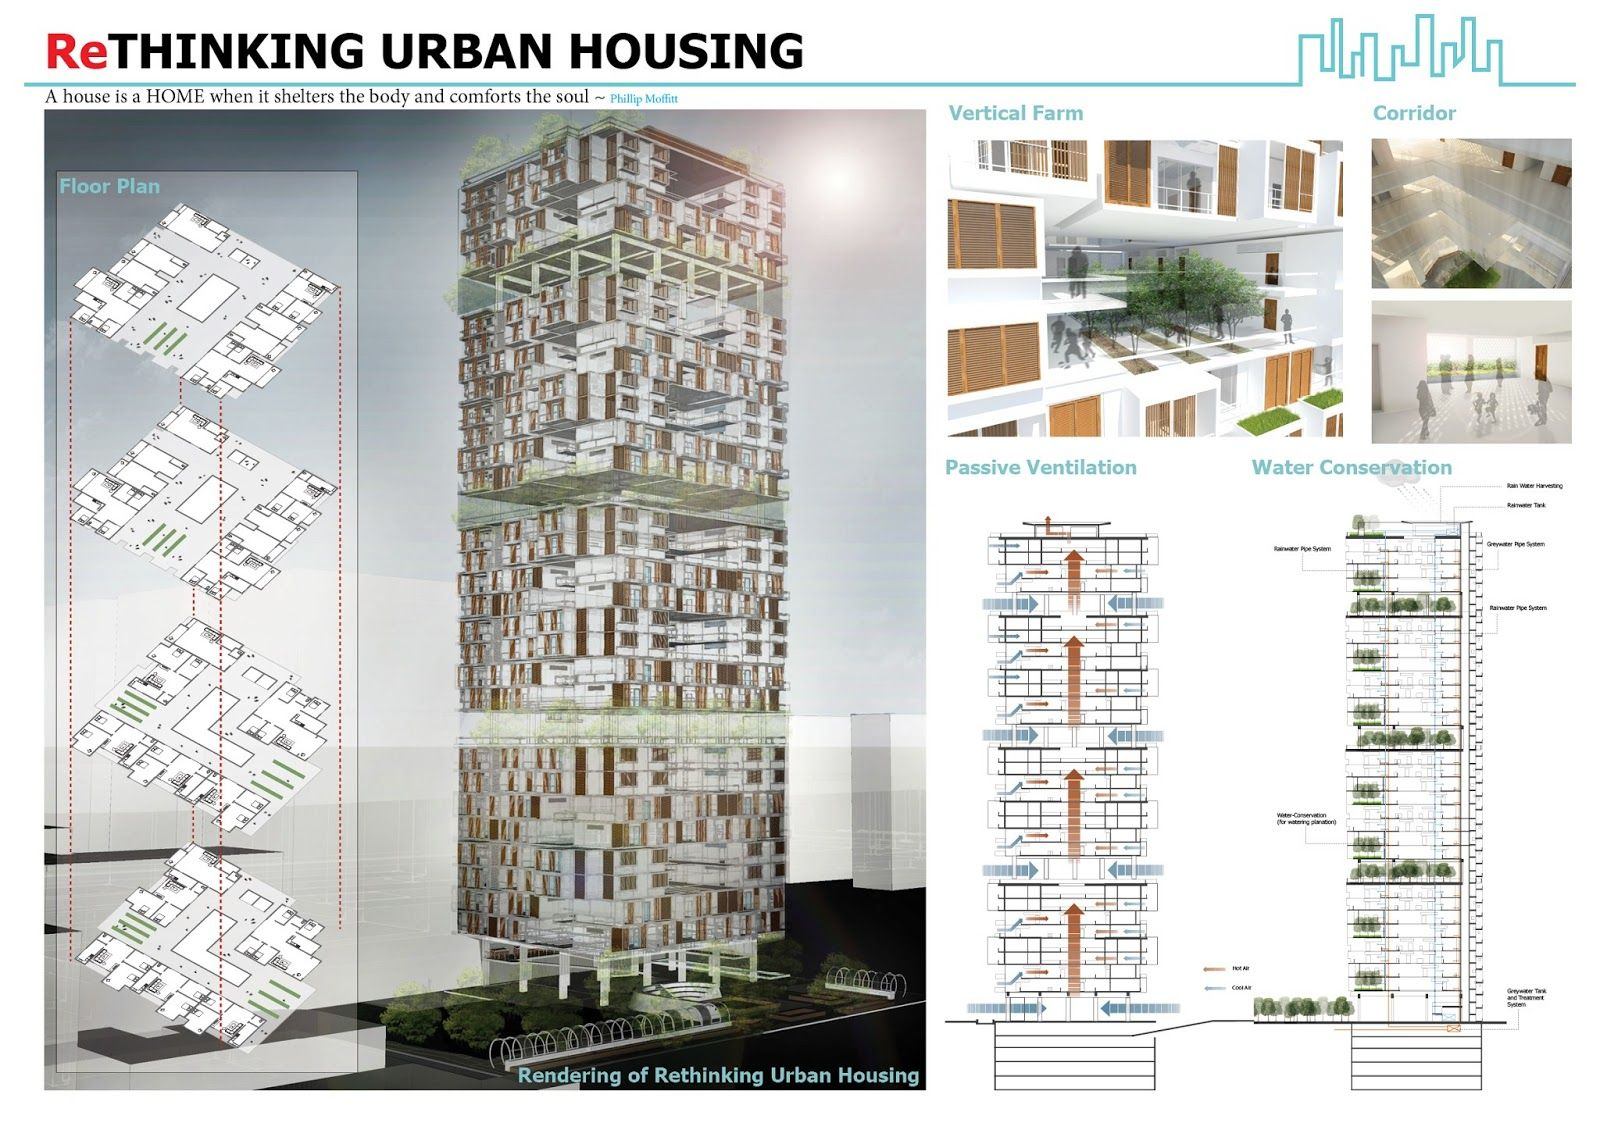 Rethinking urban housing archiprix s e a 2012 architecture for Architectural design concept ppt